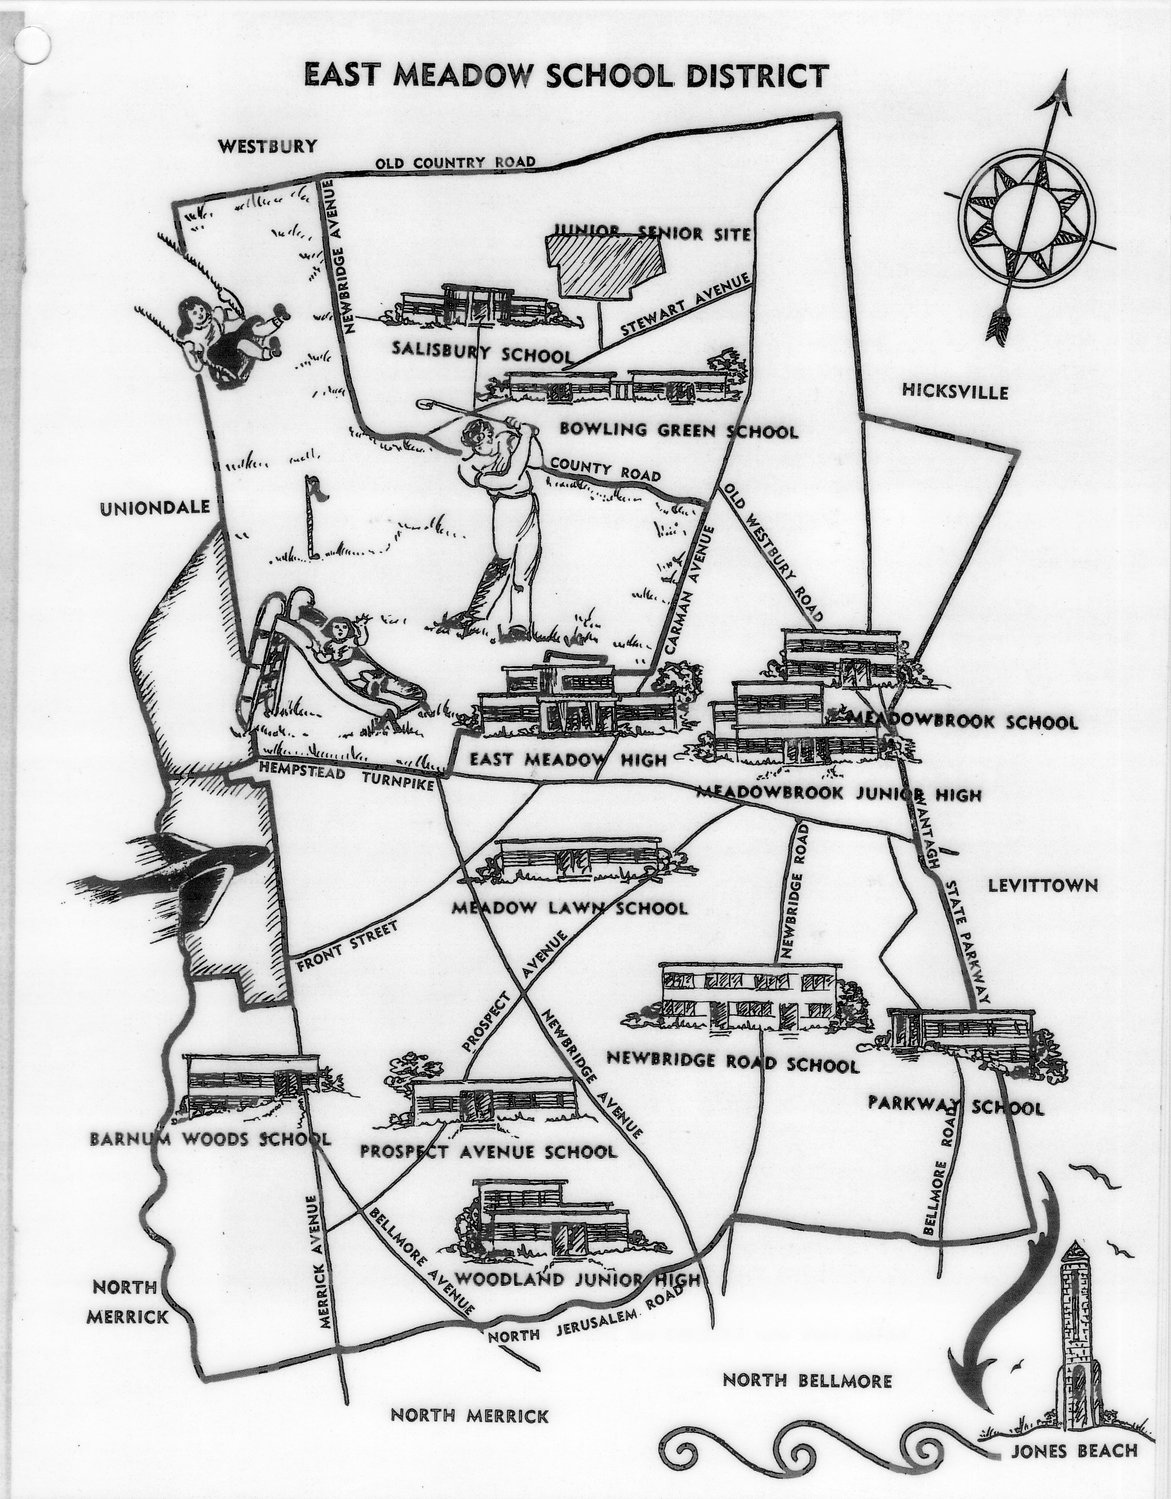 The above is a map was drawn by Phyllis Nelson, who was the art director for the East Meadow School District in 1955.